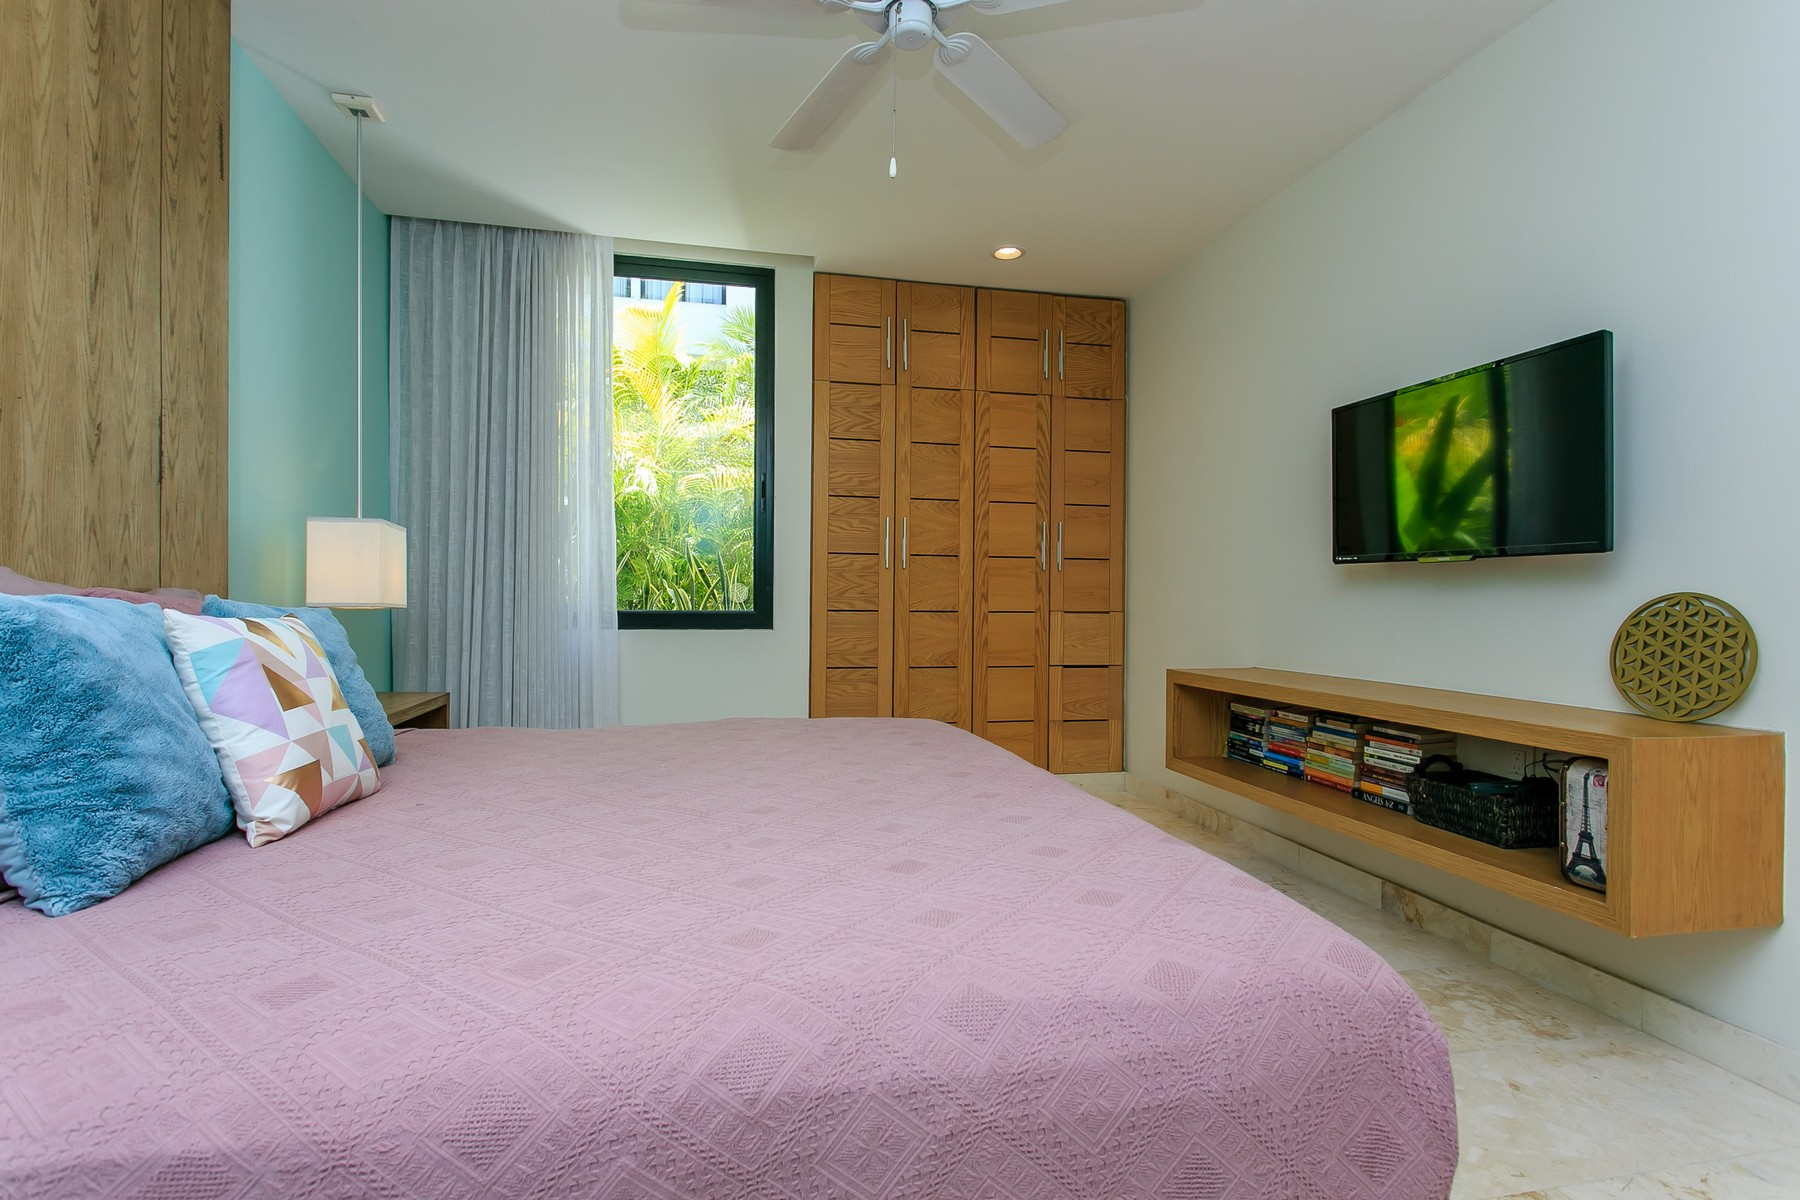 Additional photo for property listing at CHARMING ONE BEDROOM CONDO IN DOWNTOWN Charming one bedroom condo in downtown Ave. 20 entre calle 14 bis y 16 Playa Del Carmen, Quintana Roo 77710 Mexico